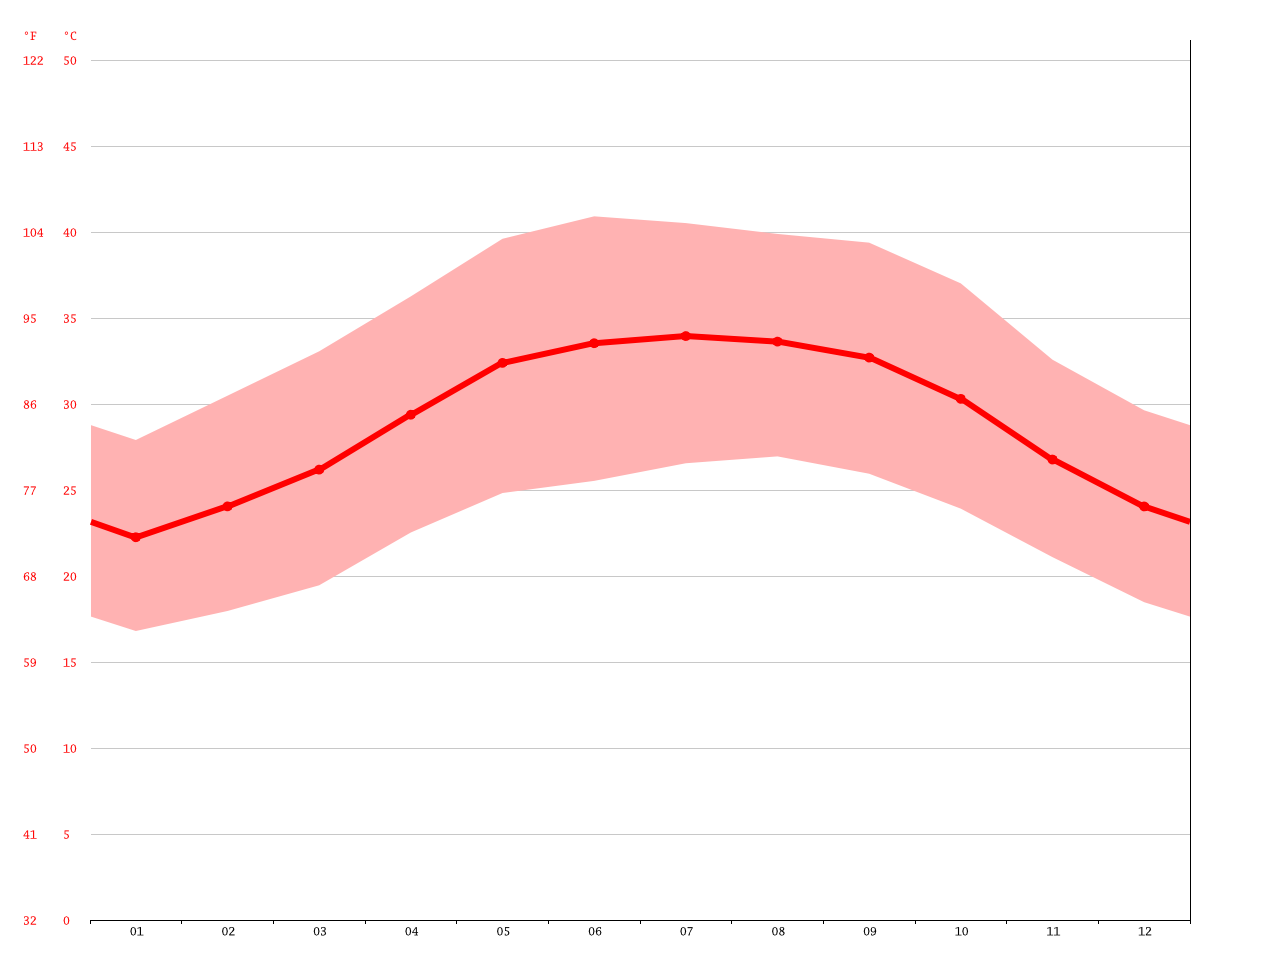 Al Yaqutiyah climate: Average Temperature, weather by month